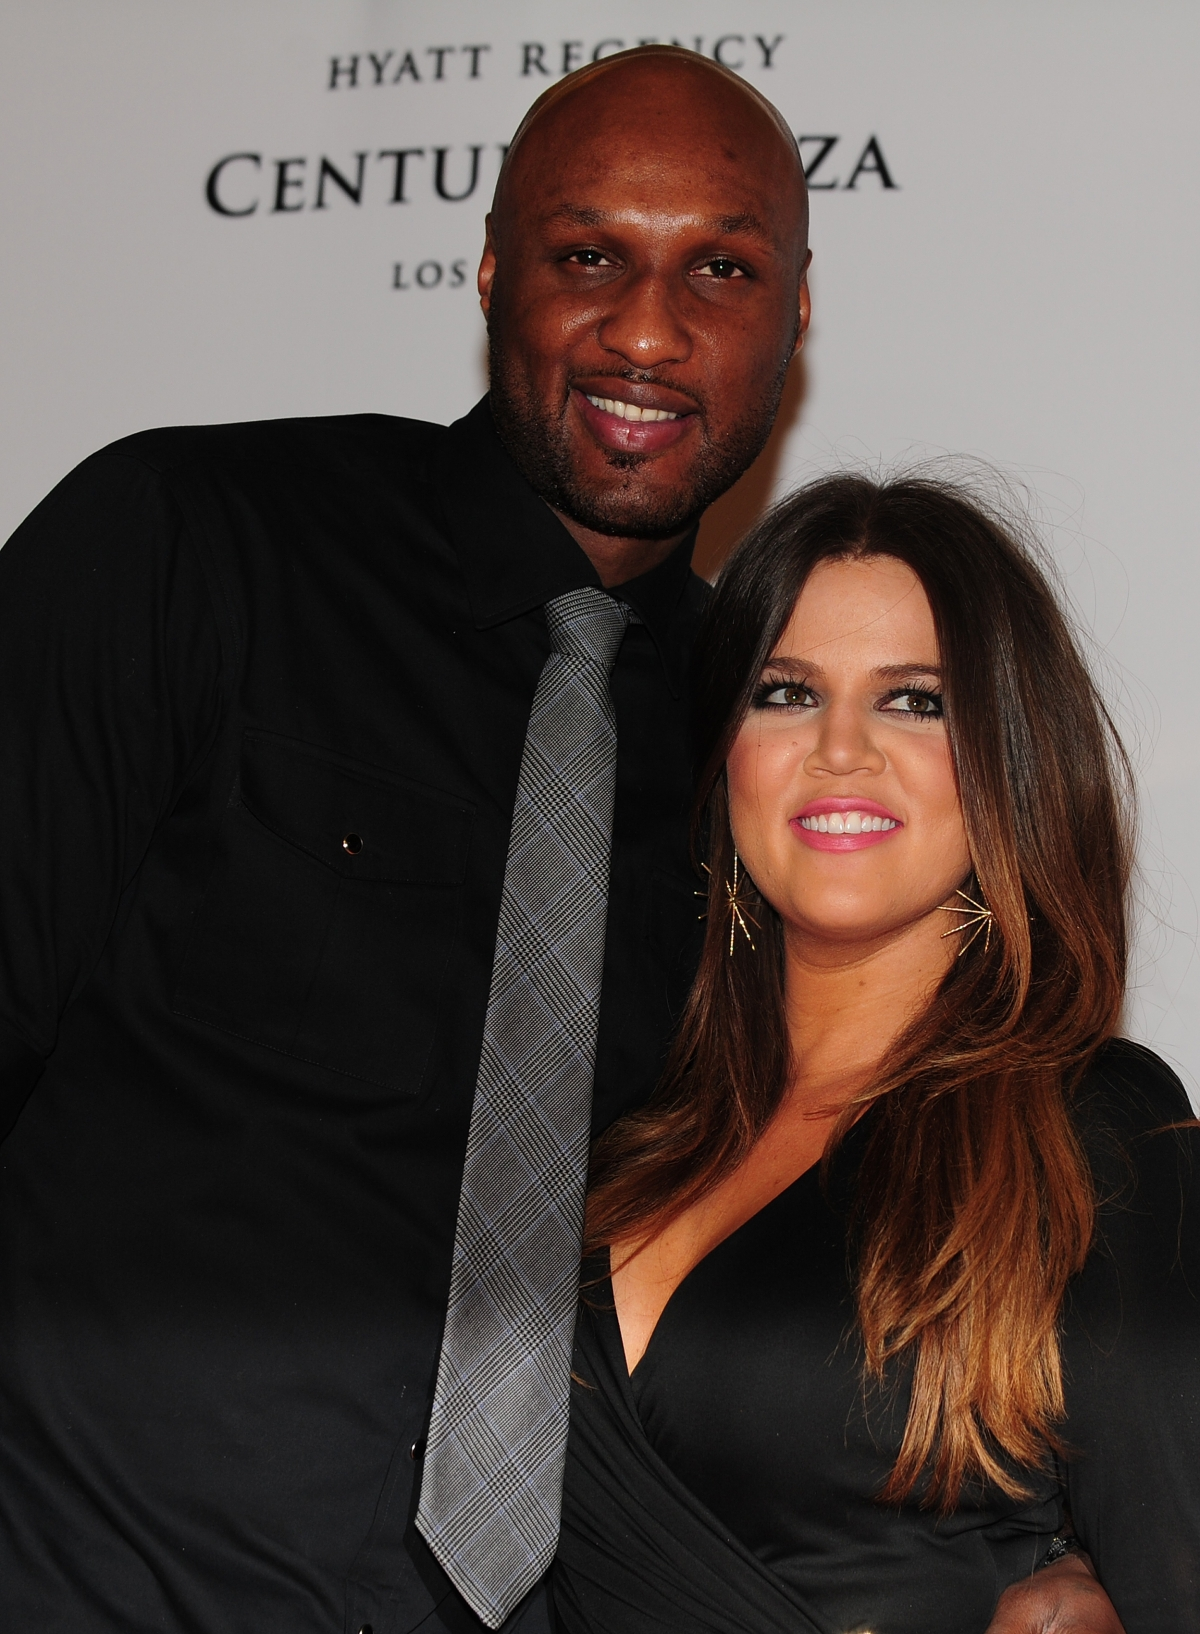 Khloe Kardashian and Lamar Odom A Timeline of Their Relationship